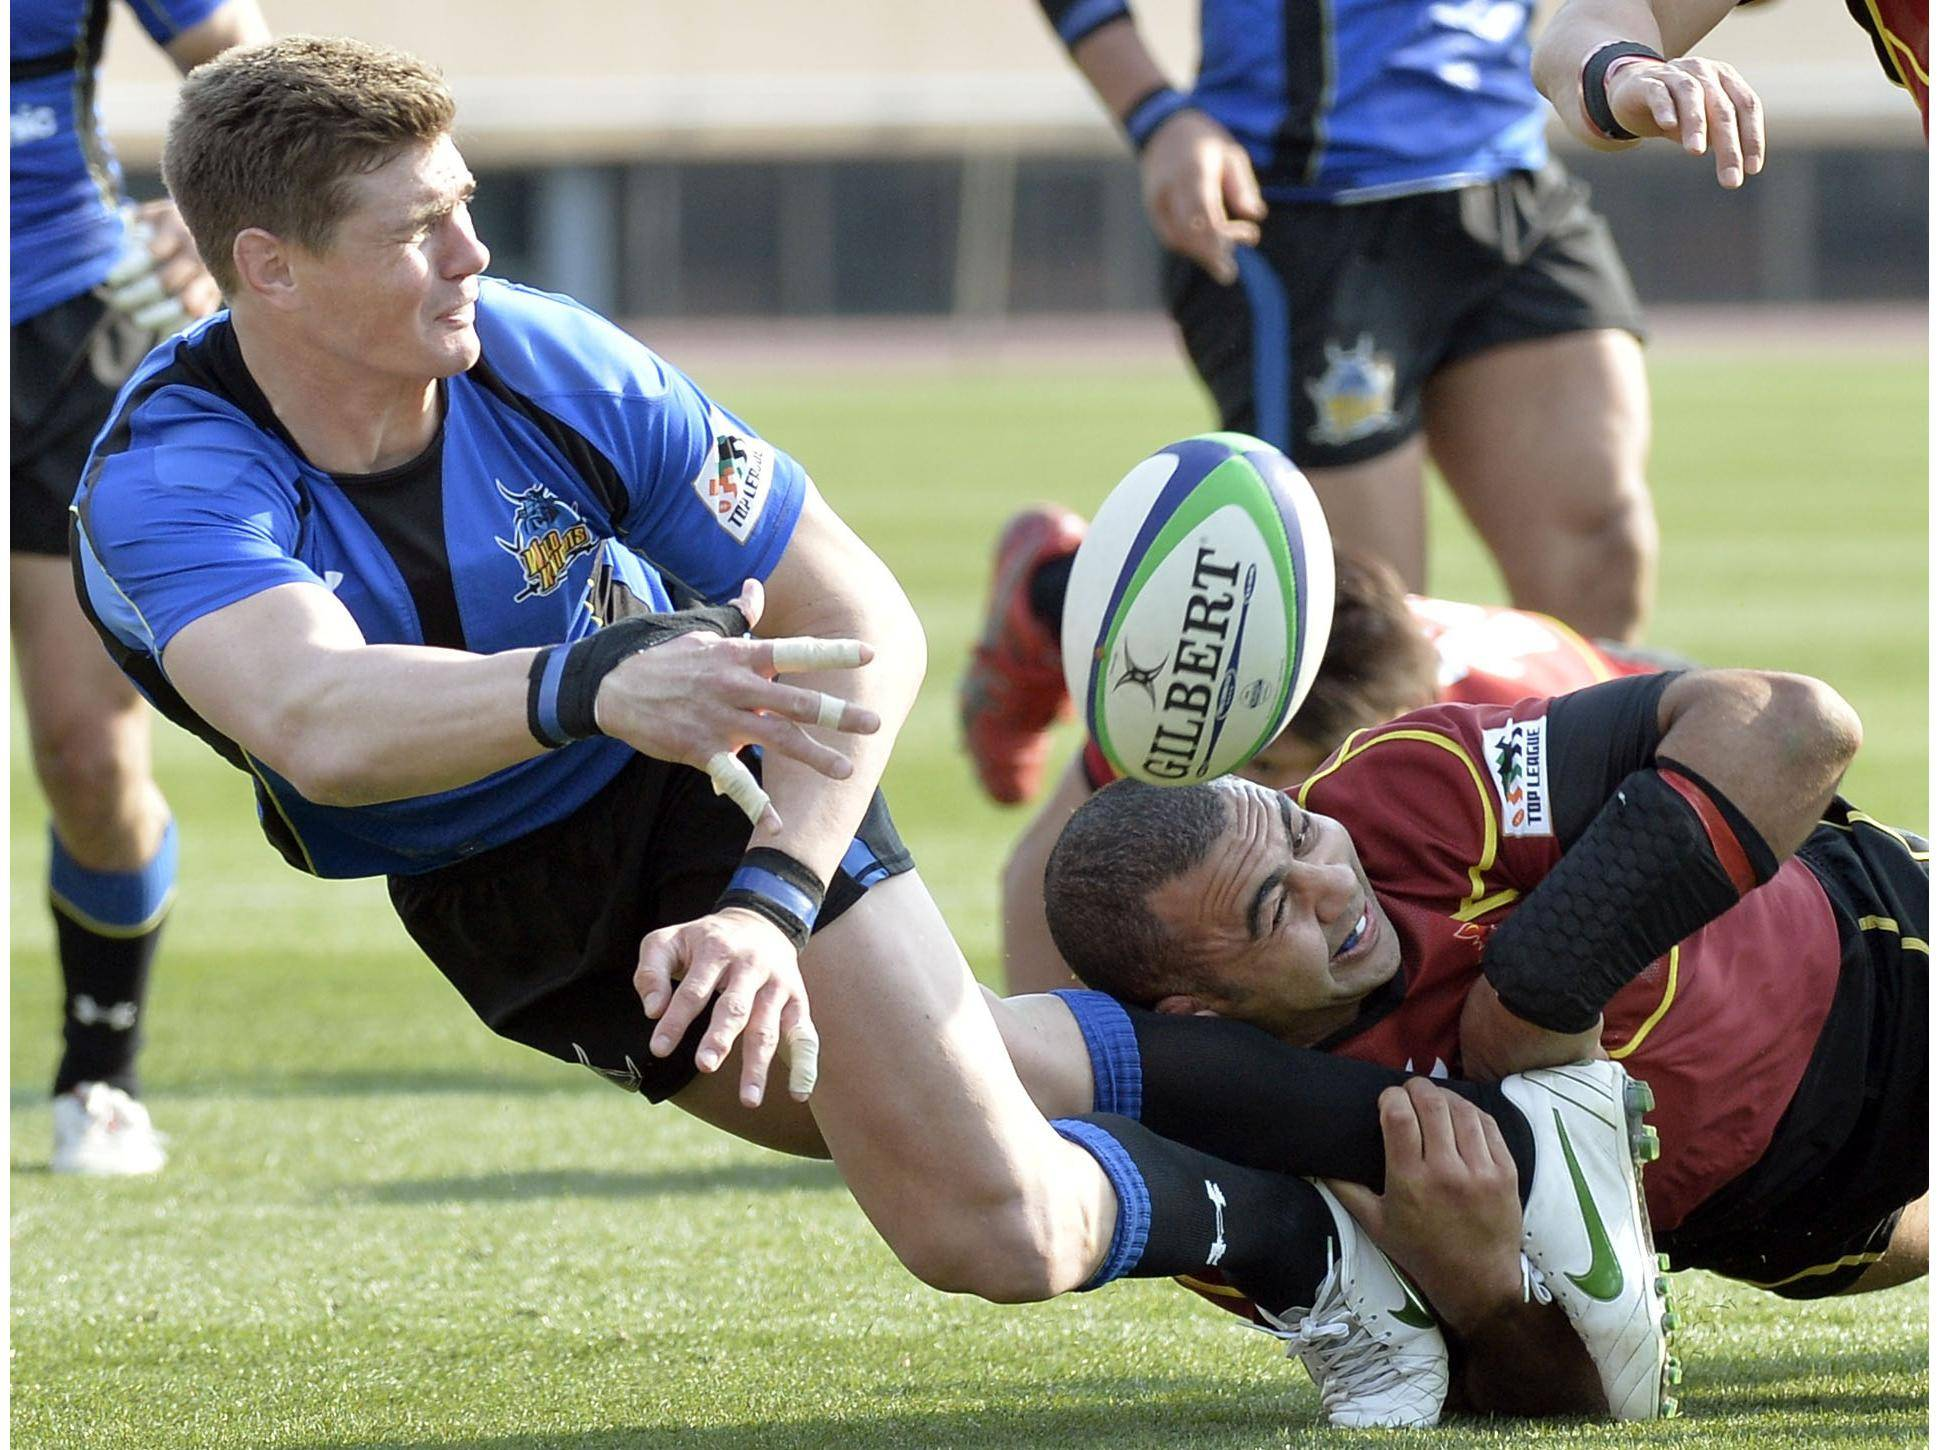 Panasonic's Berrick Barnes (left), seen in a file photo from March 2014, is scheduled to play for a World XV team against the Brave Blossoms on Saturday in Fukuoka. | KYODO